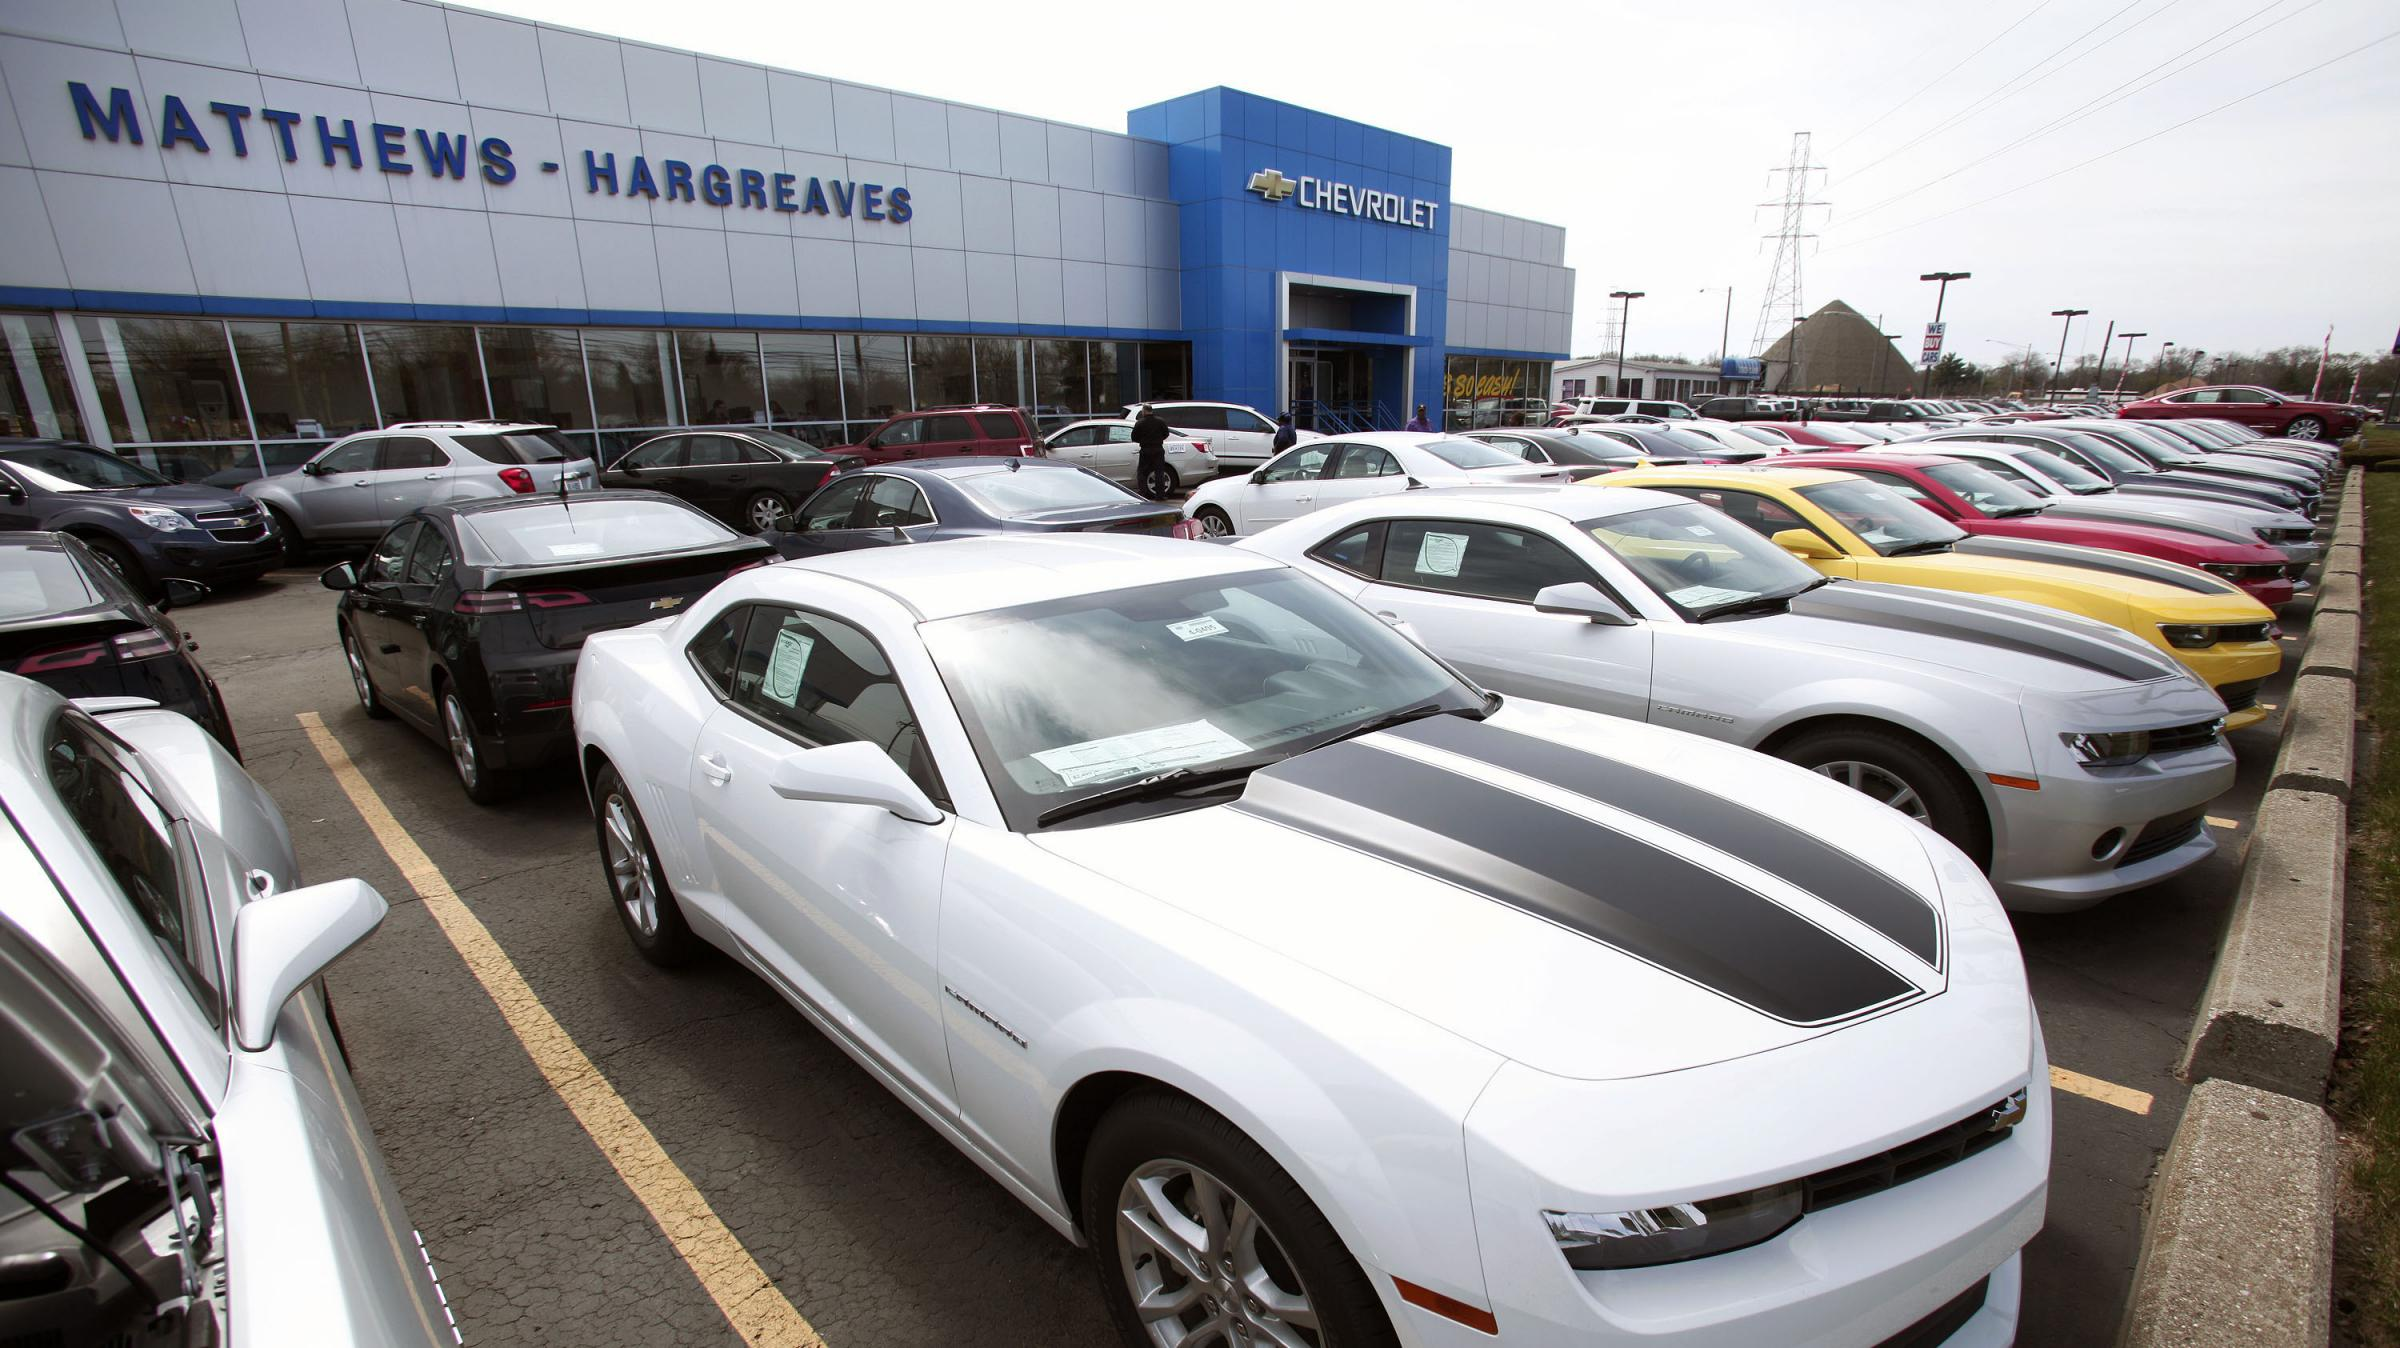 Gm Car Recall: As Carmakers Recall Vehicles, Dealers Might Make A Profit